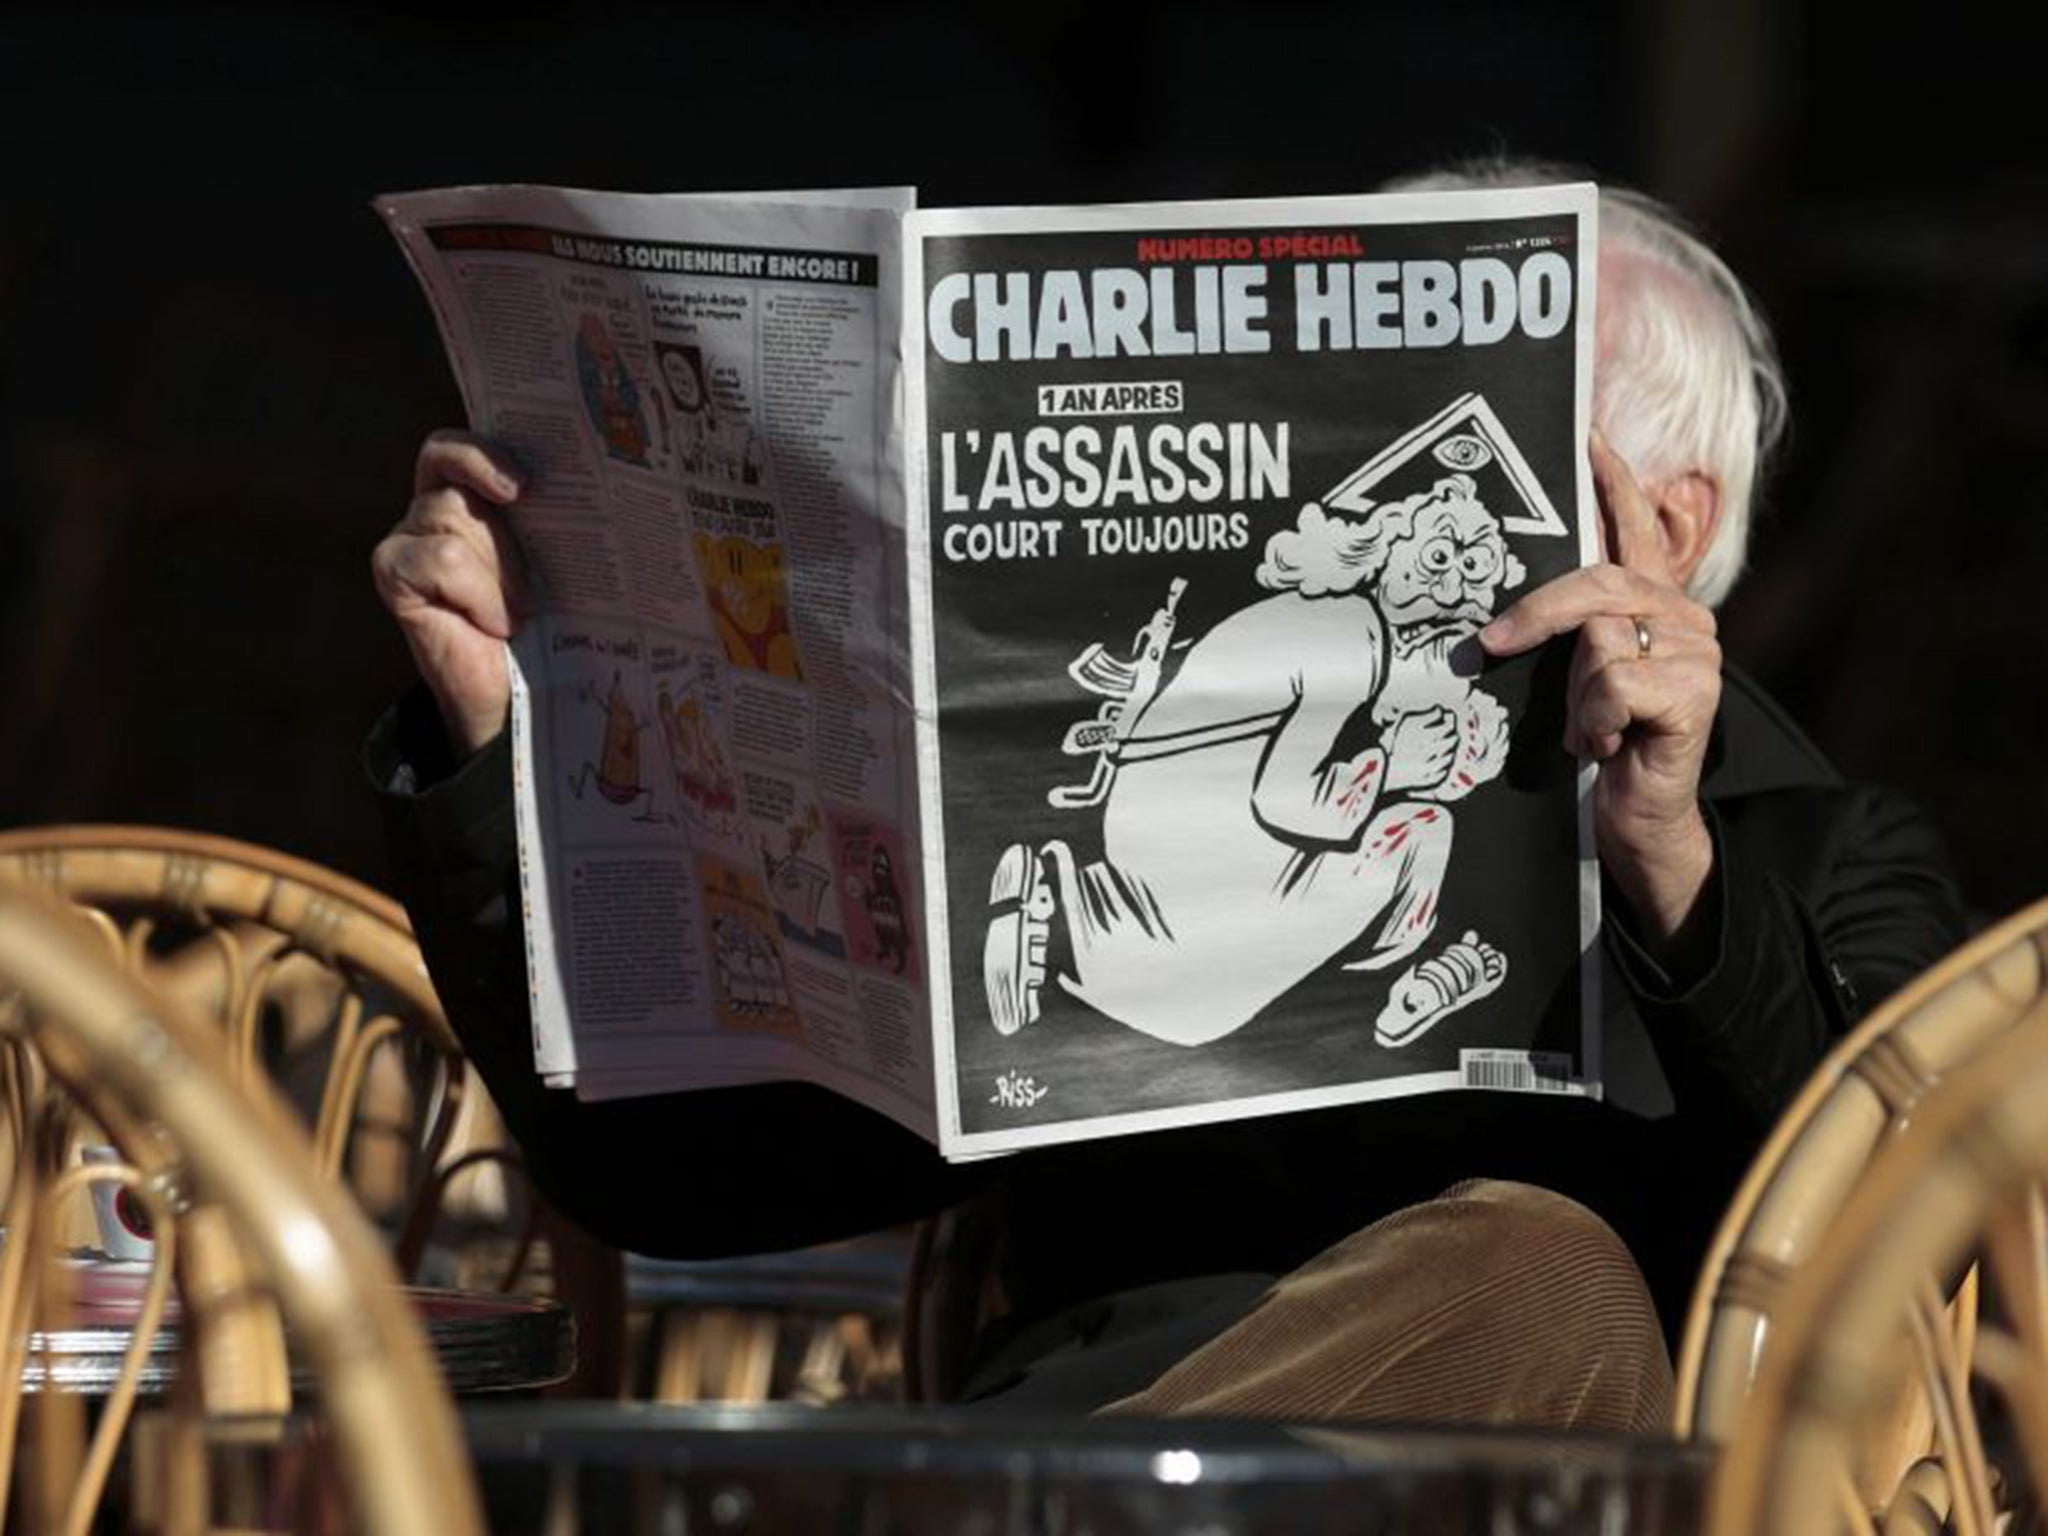 Charlie Hebdo Criticised For Calling Brussels Attacks Tip Of Islam Iceberg The Independent The Independent